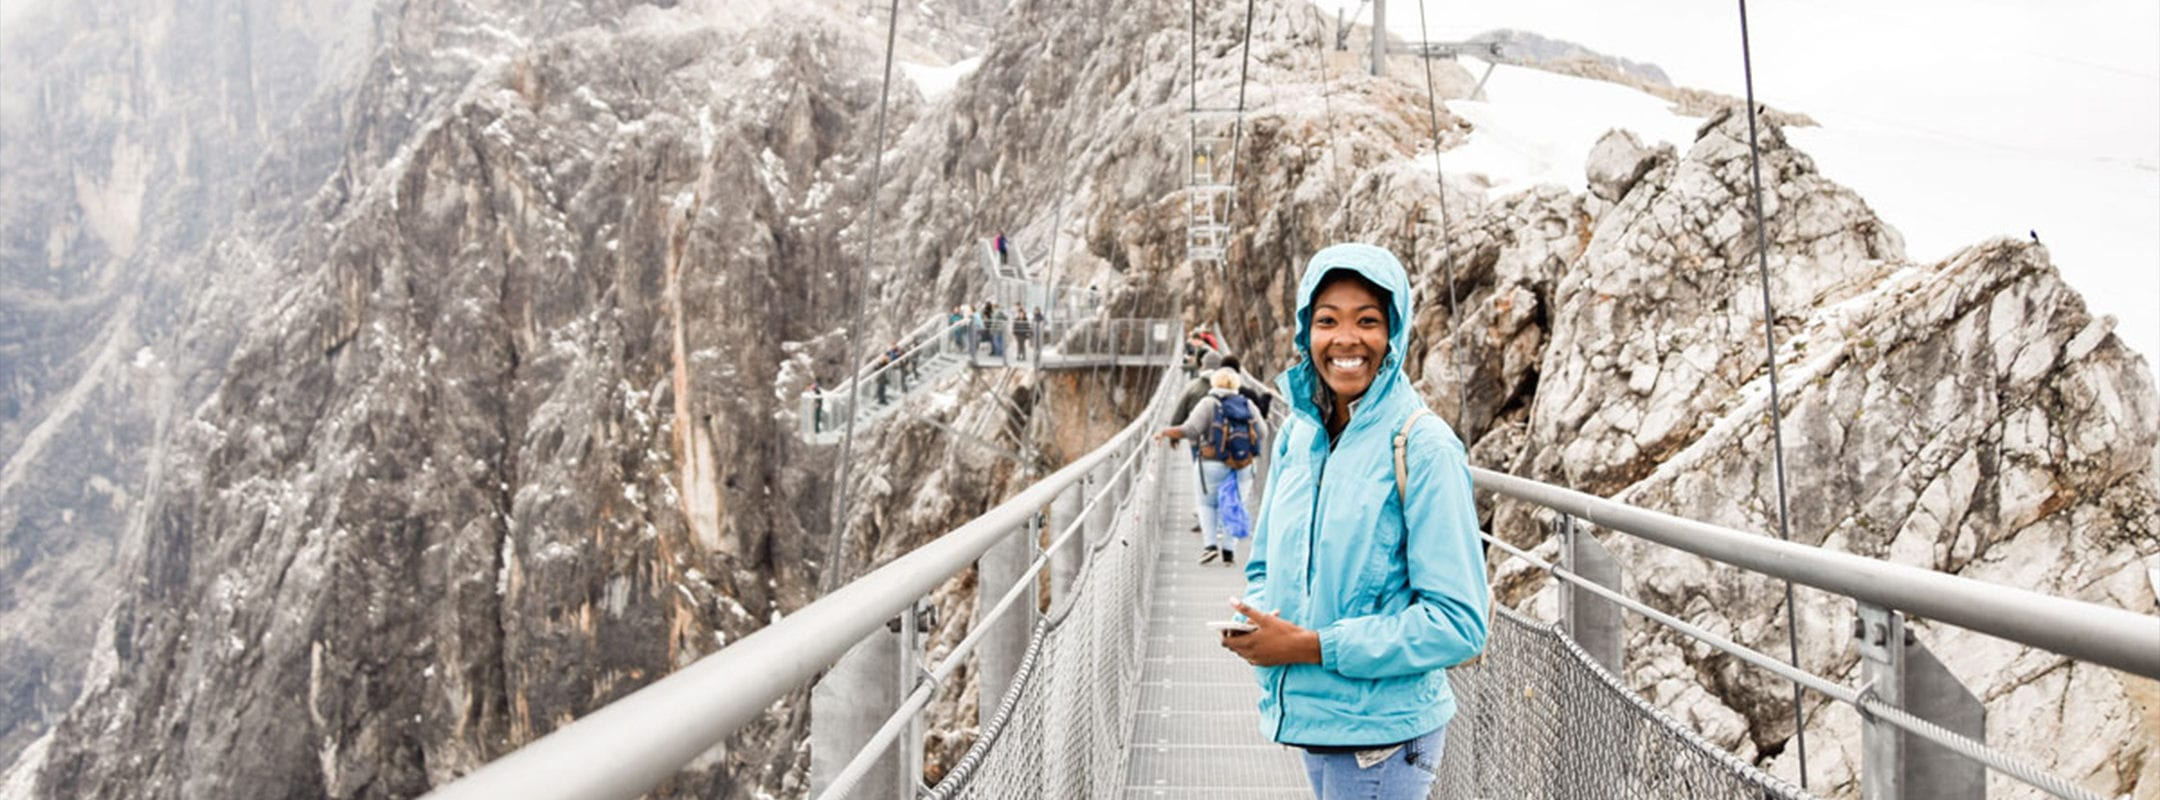 A student standing on a metal walkway bridge high up in mountains that are dusted in snow.